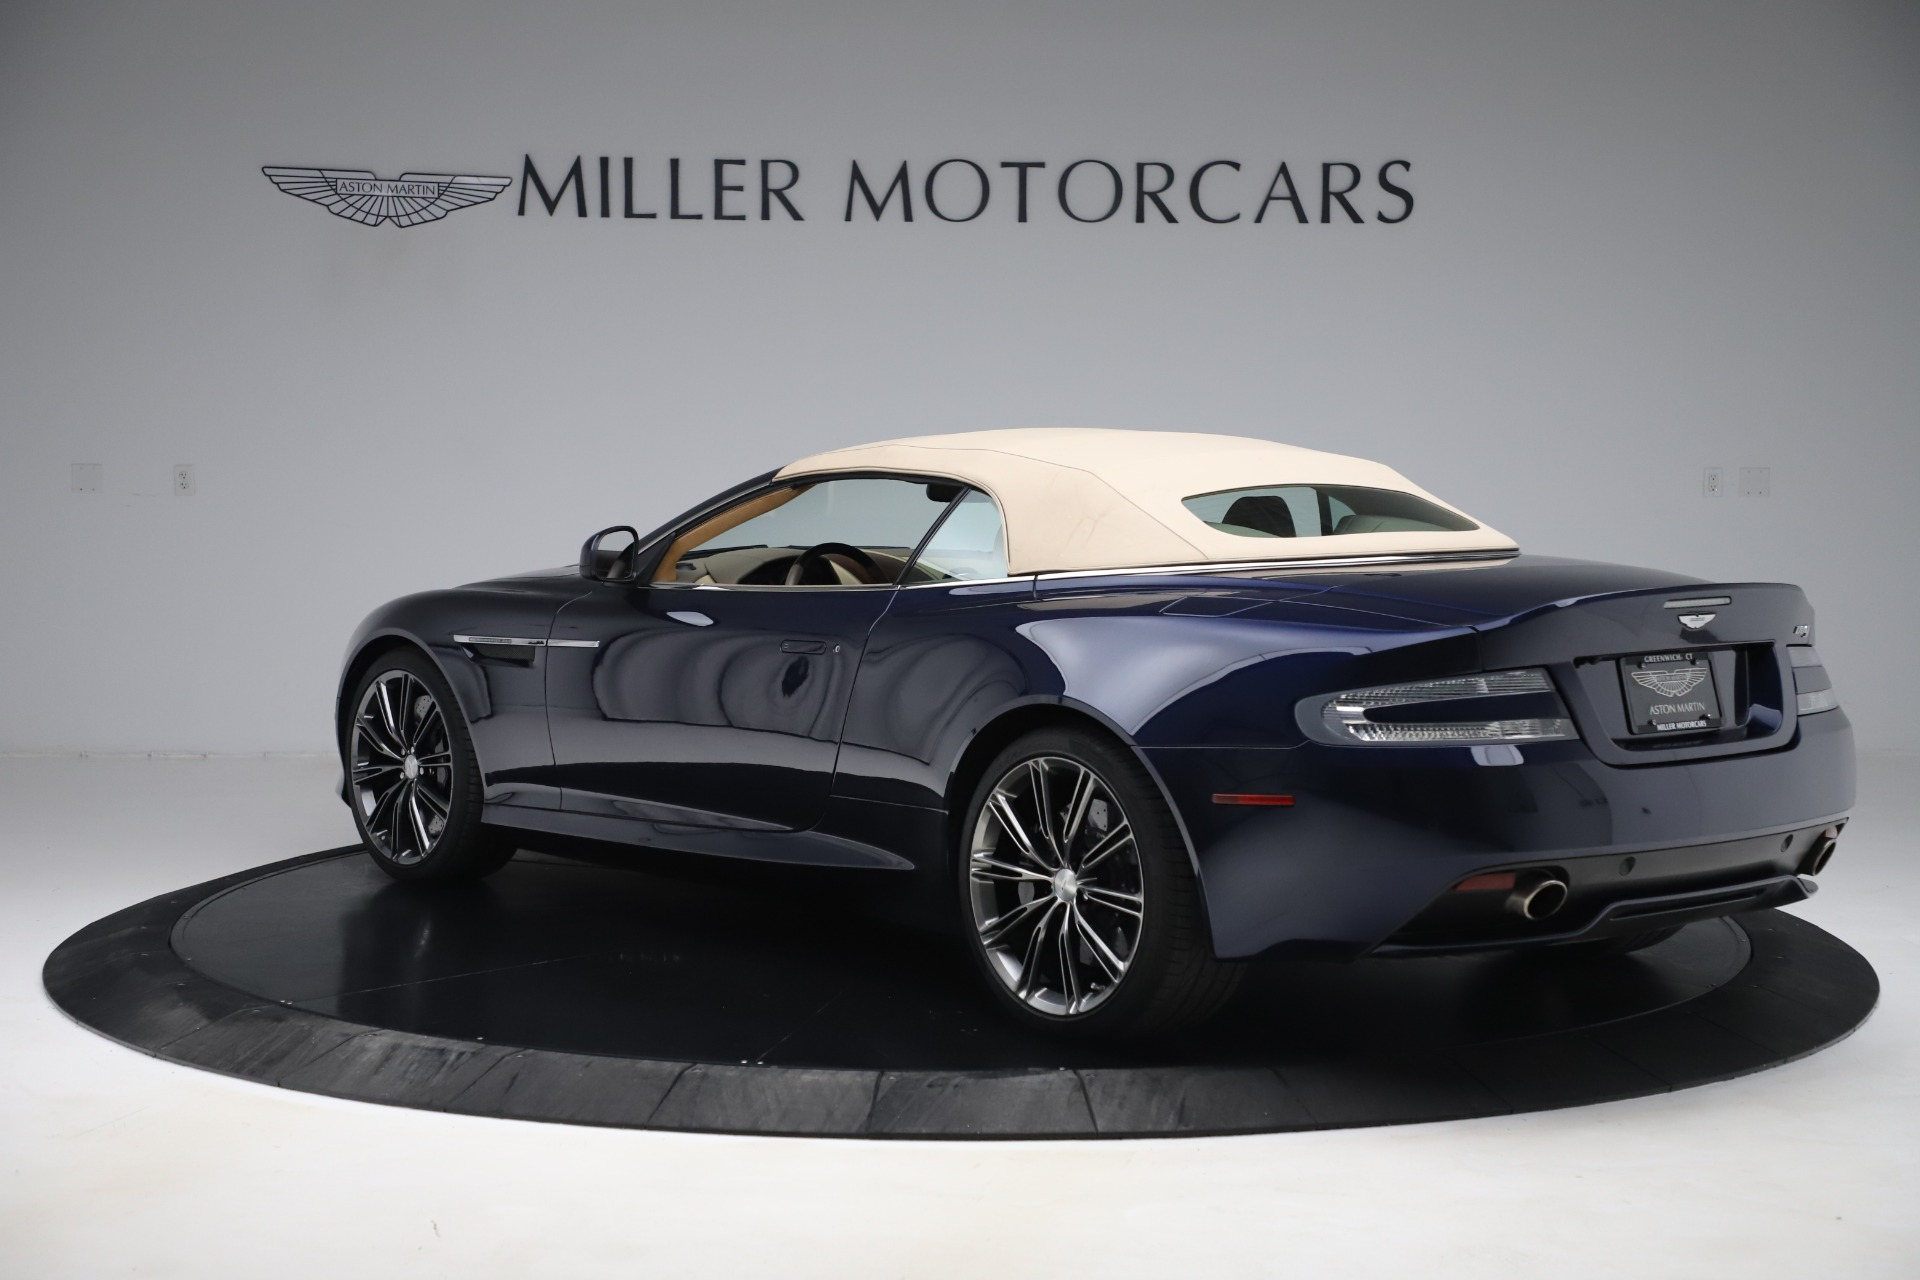 Used 2014 Aston Martin DB9 Volante For Sale In Westport, CT 3591_p15